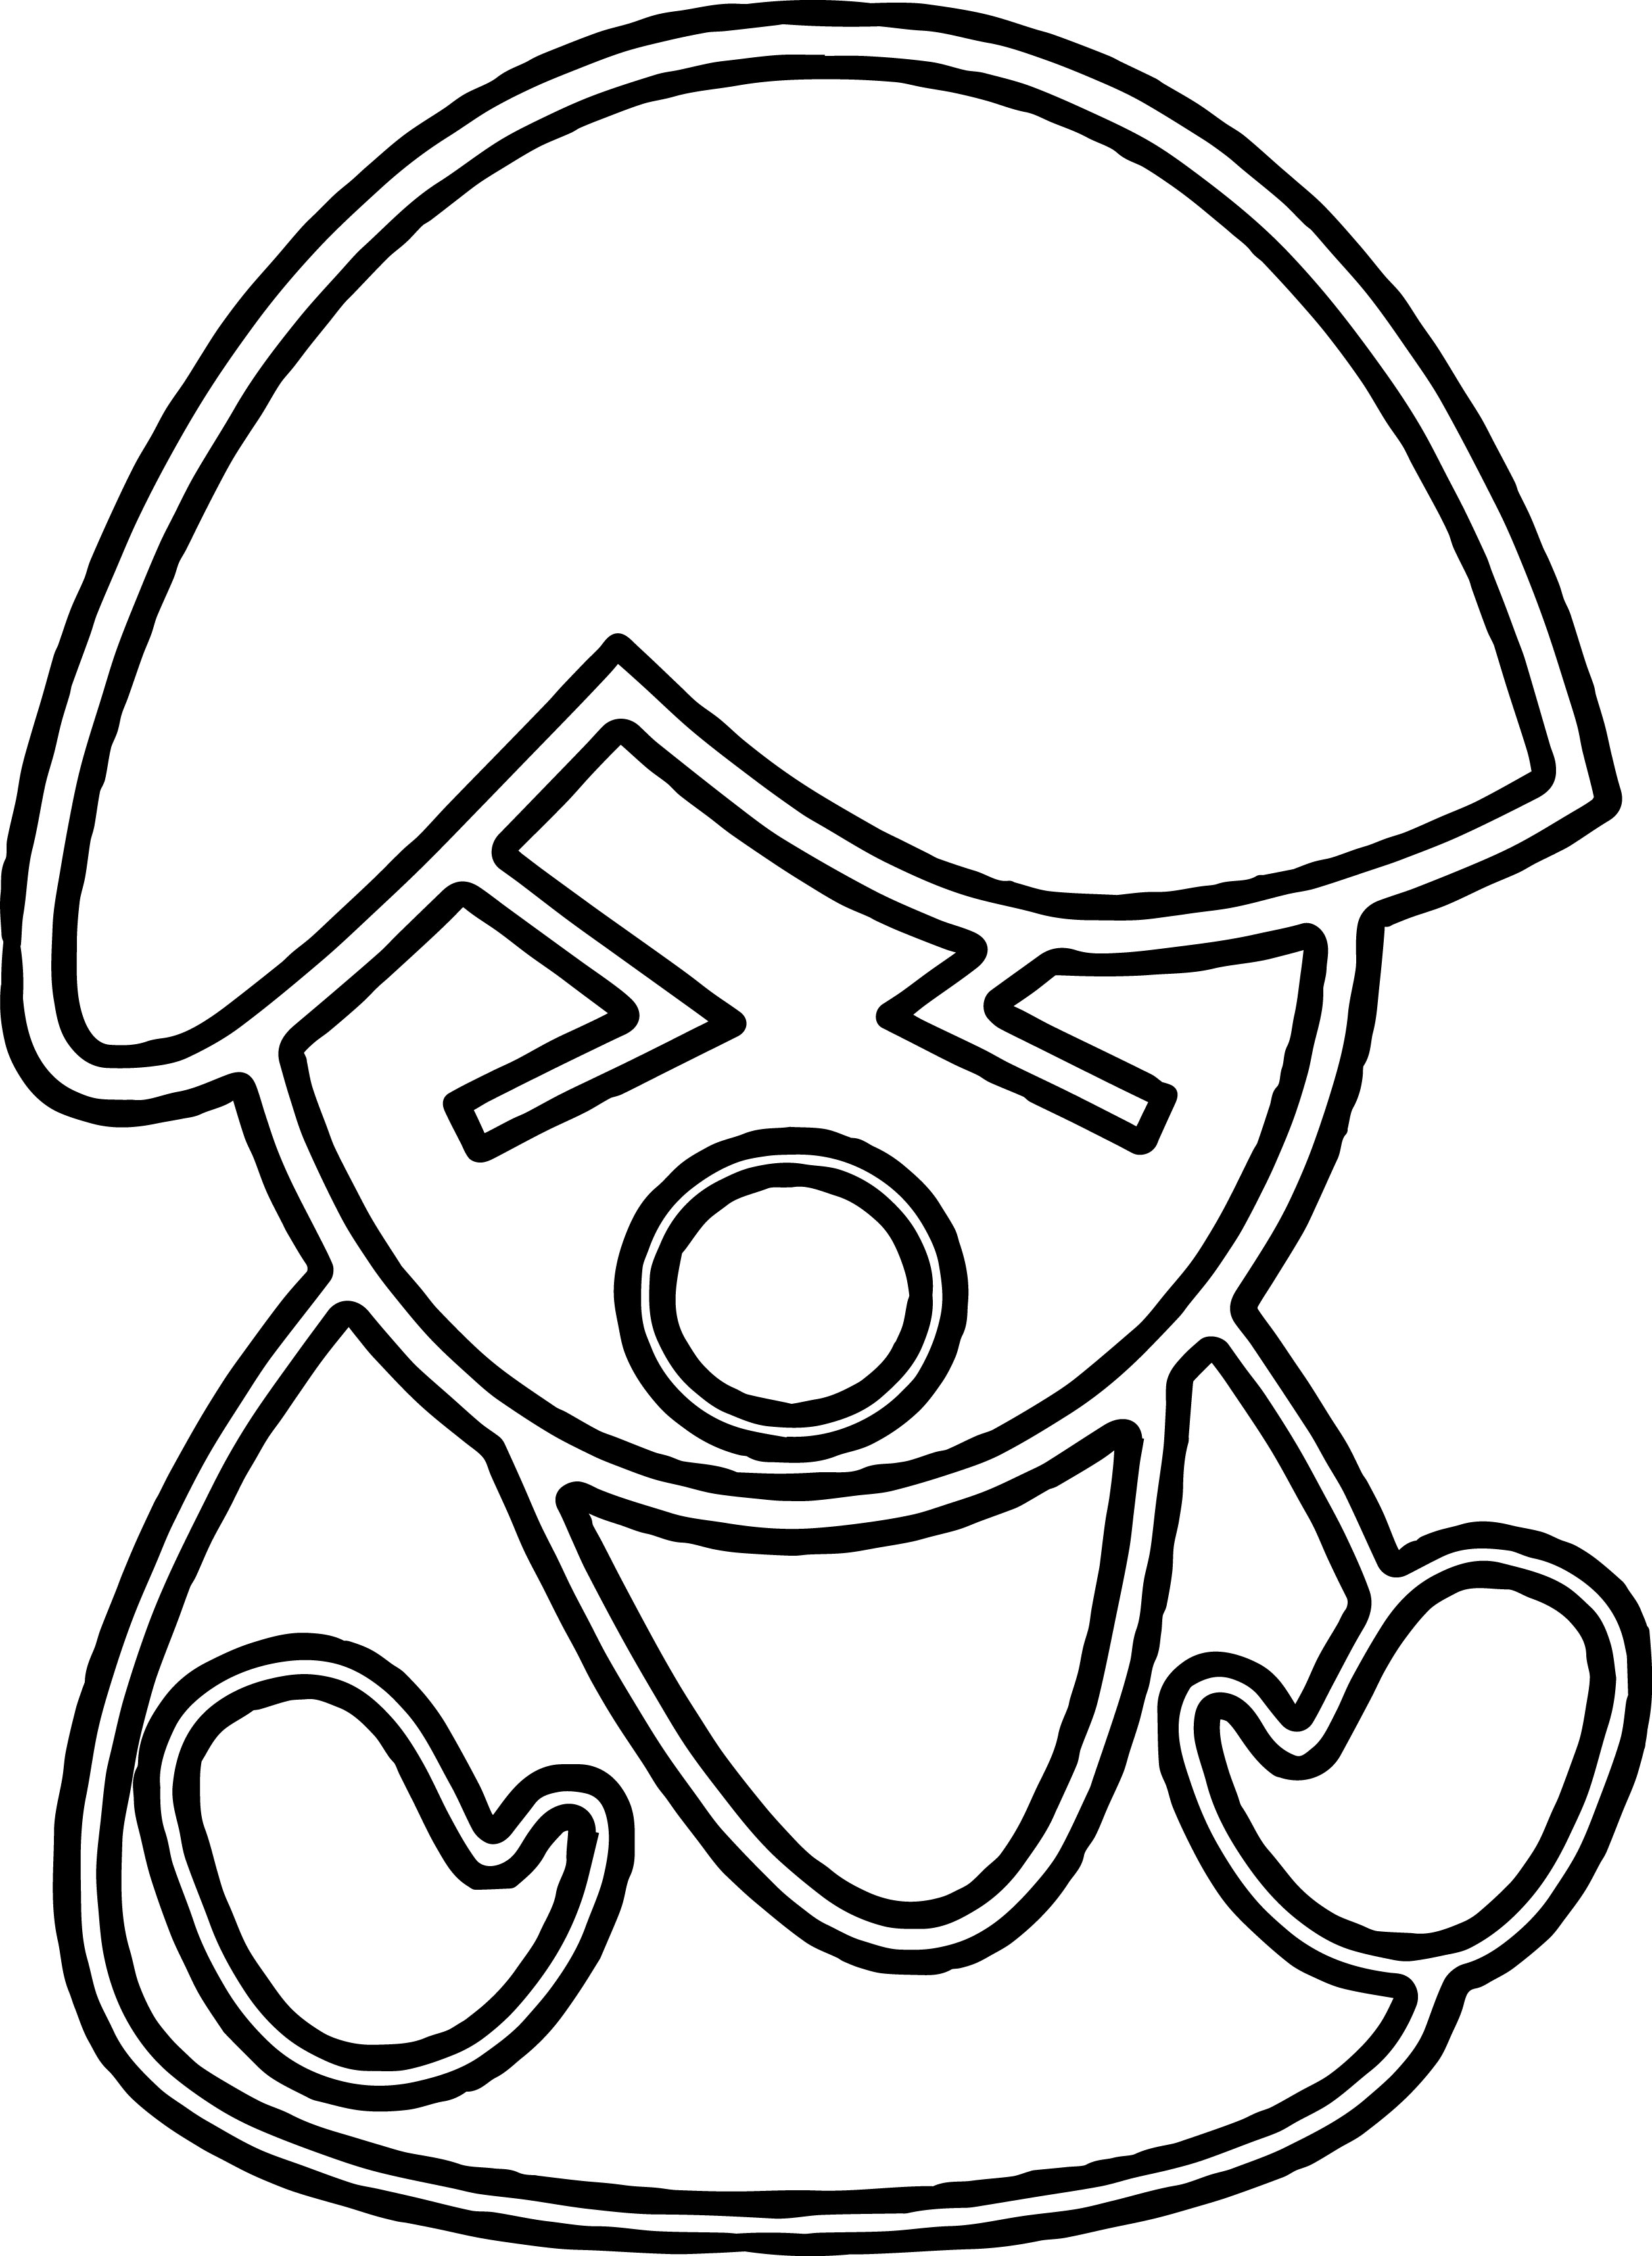 Angry Figure Coloring Page